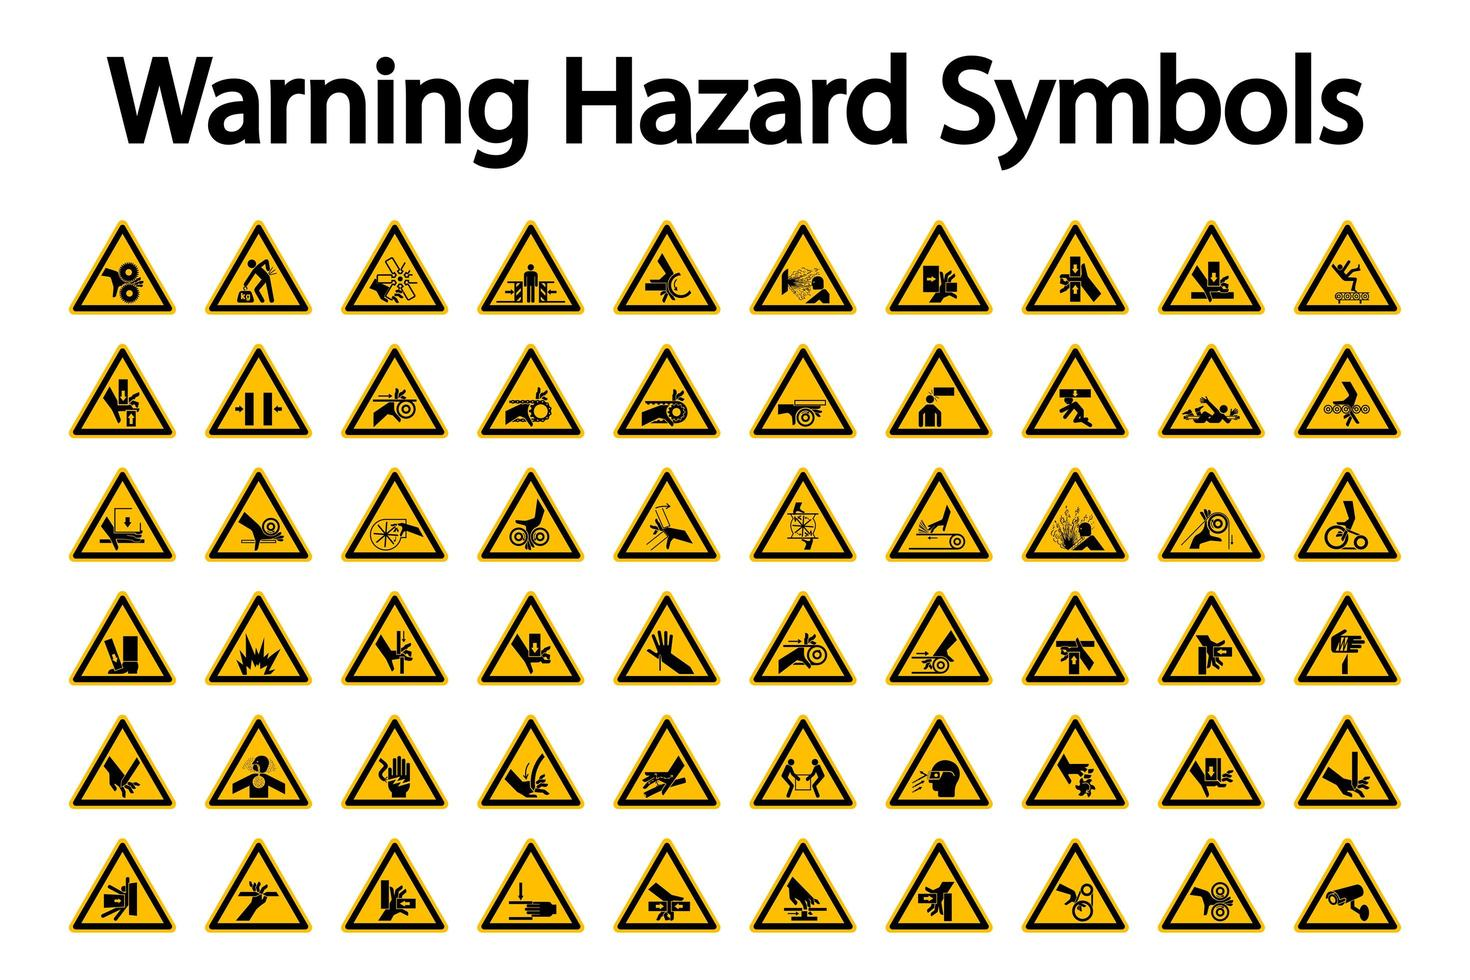 Dreieckige Warnung Hazard Sign Set vektor